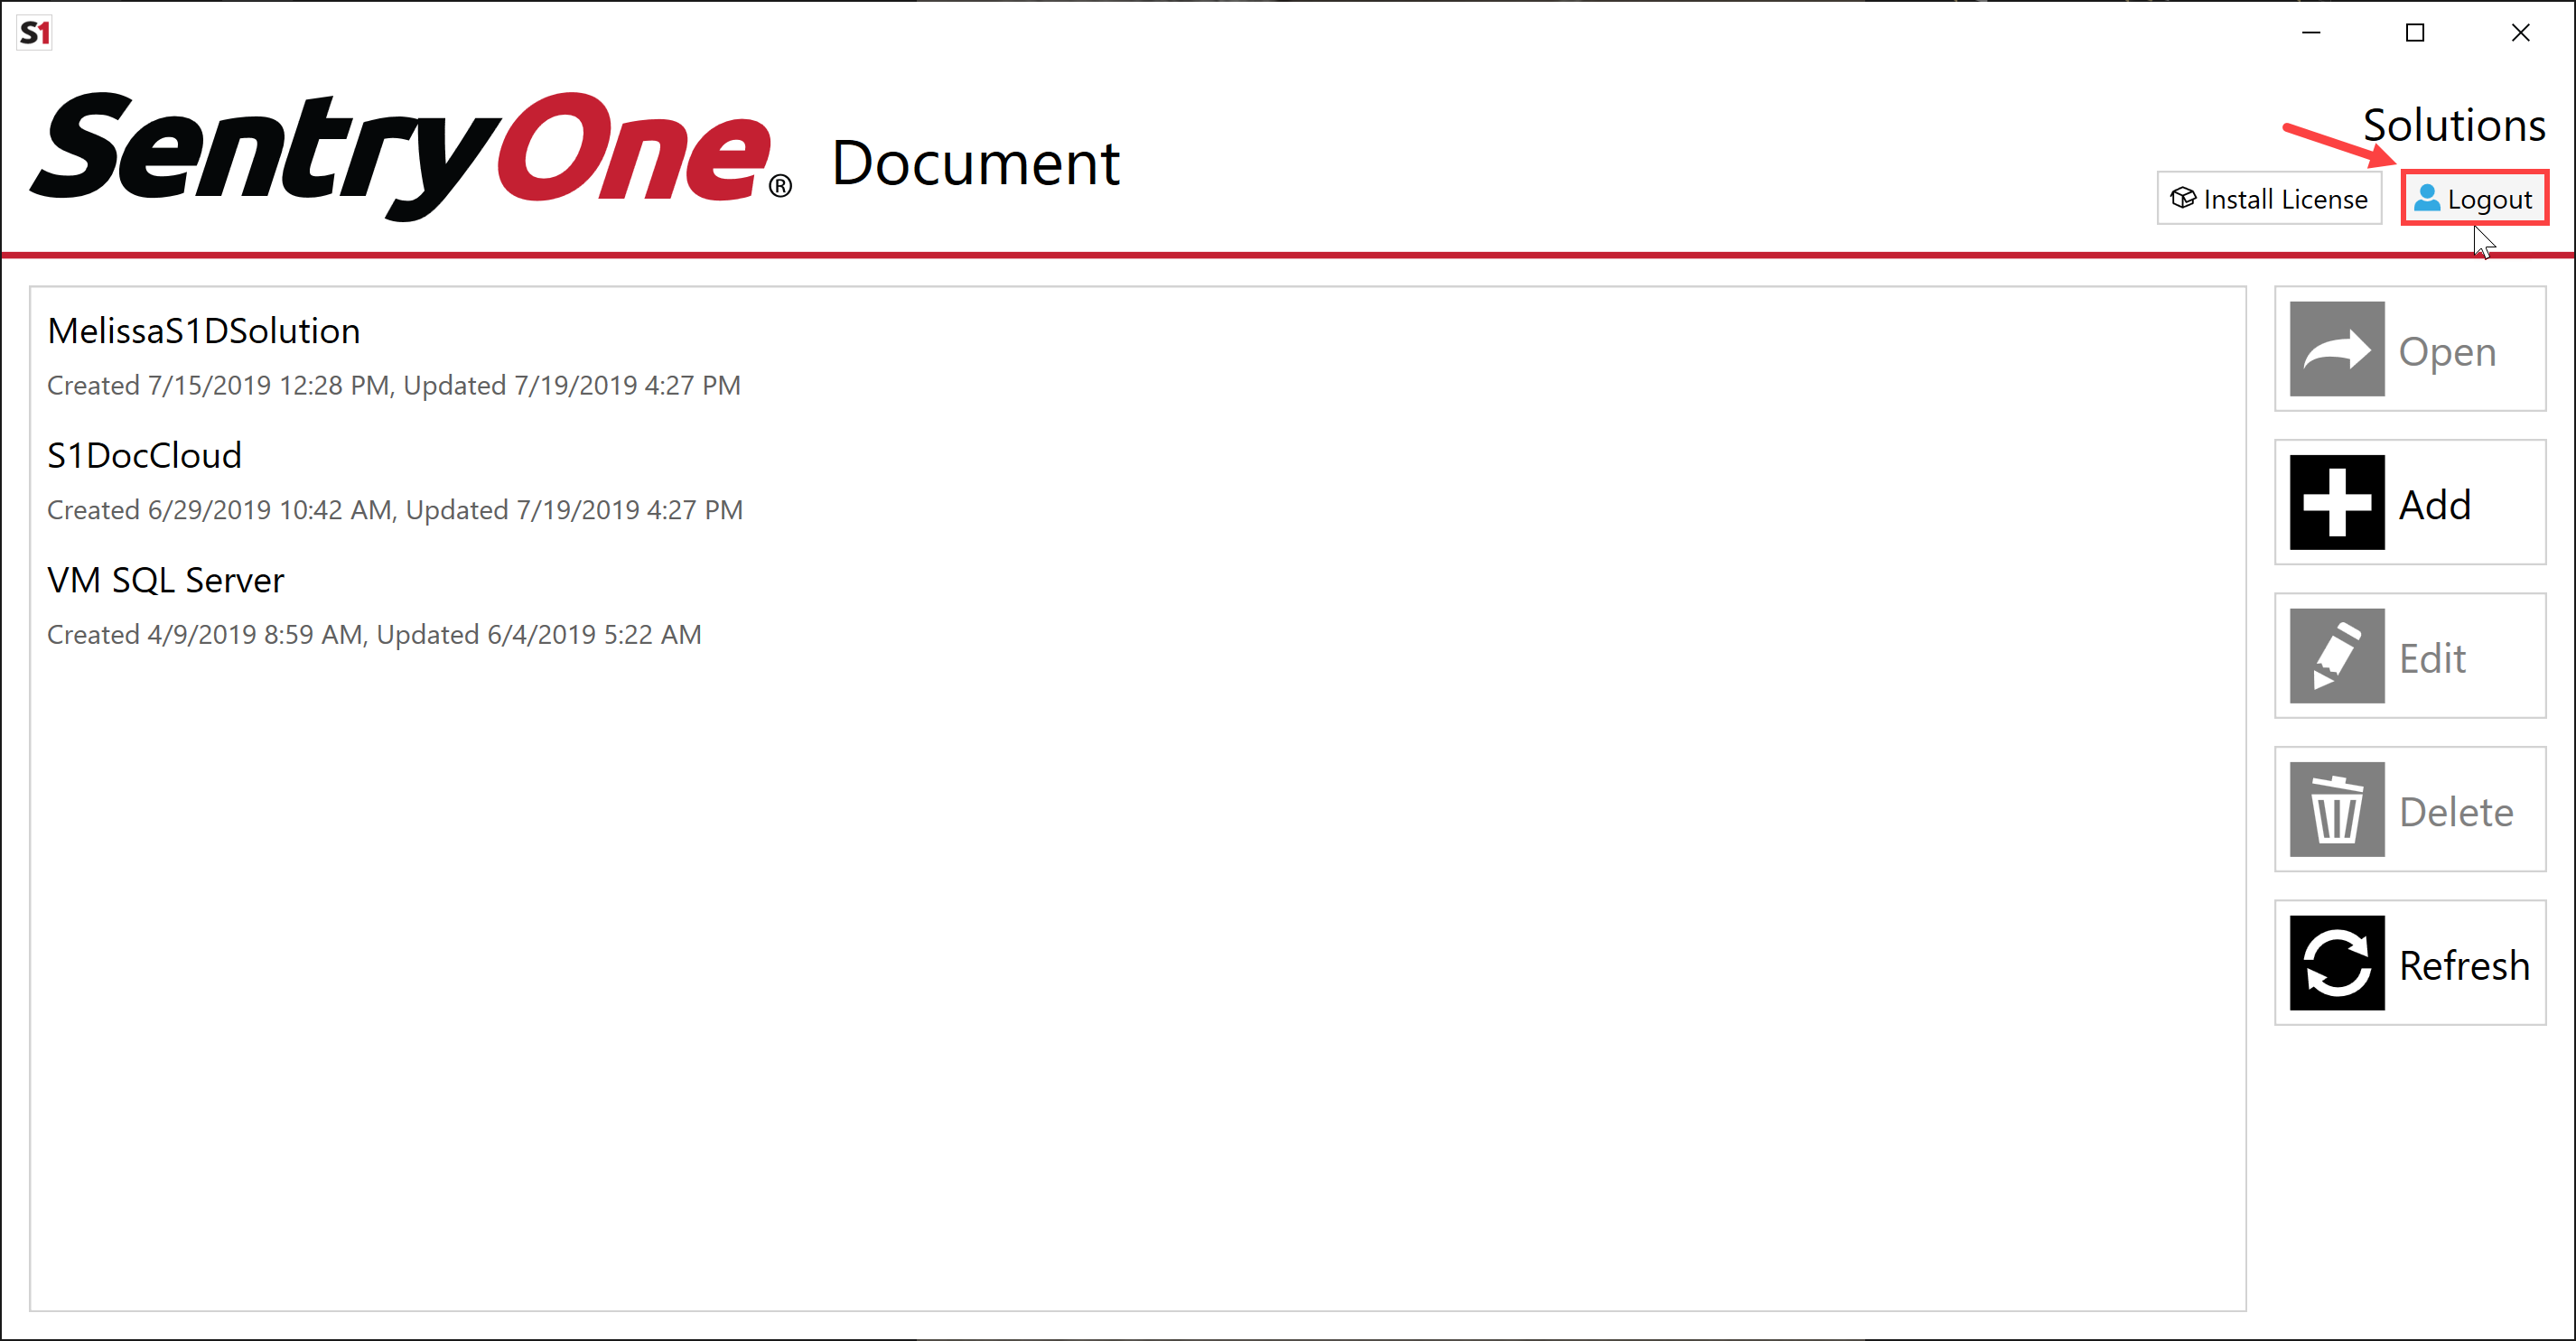 SentryOne Document Solution Configuration Tool select Logout